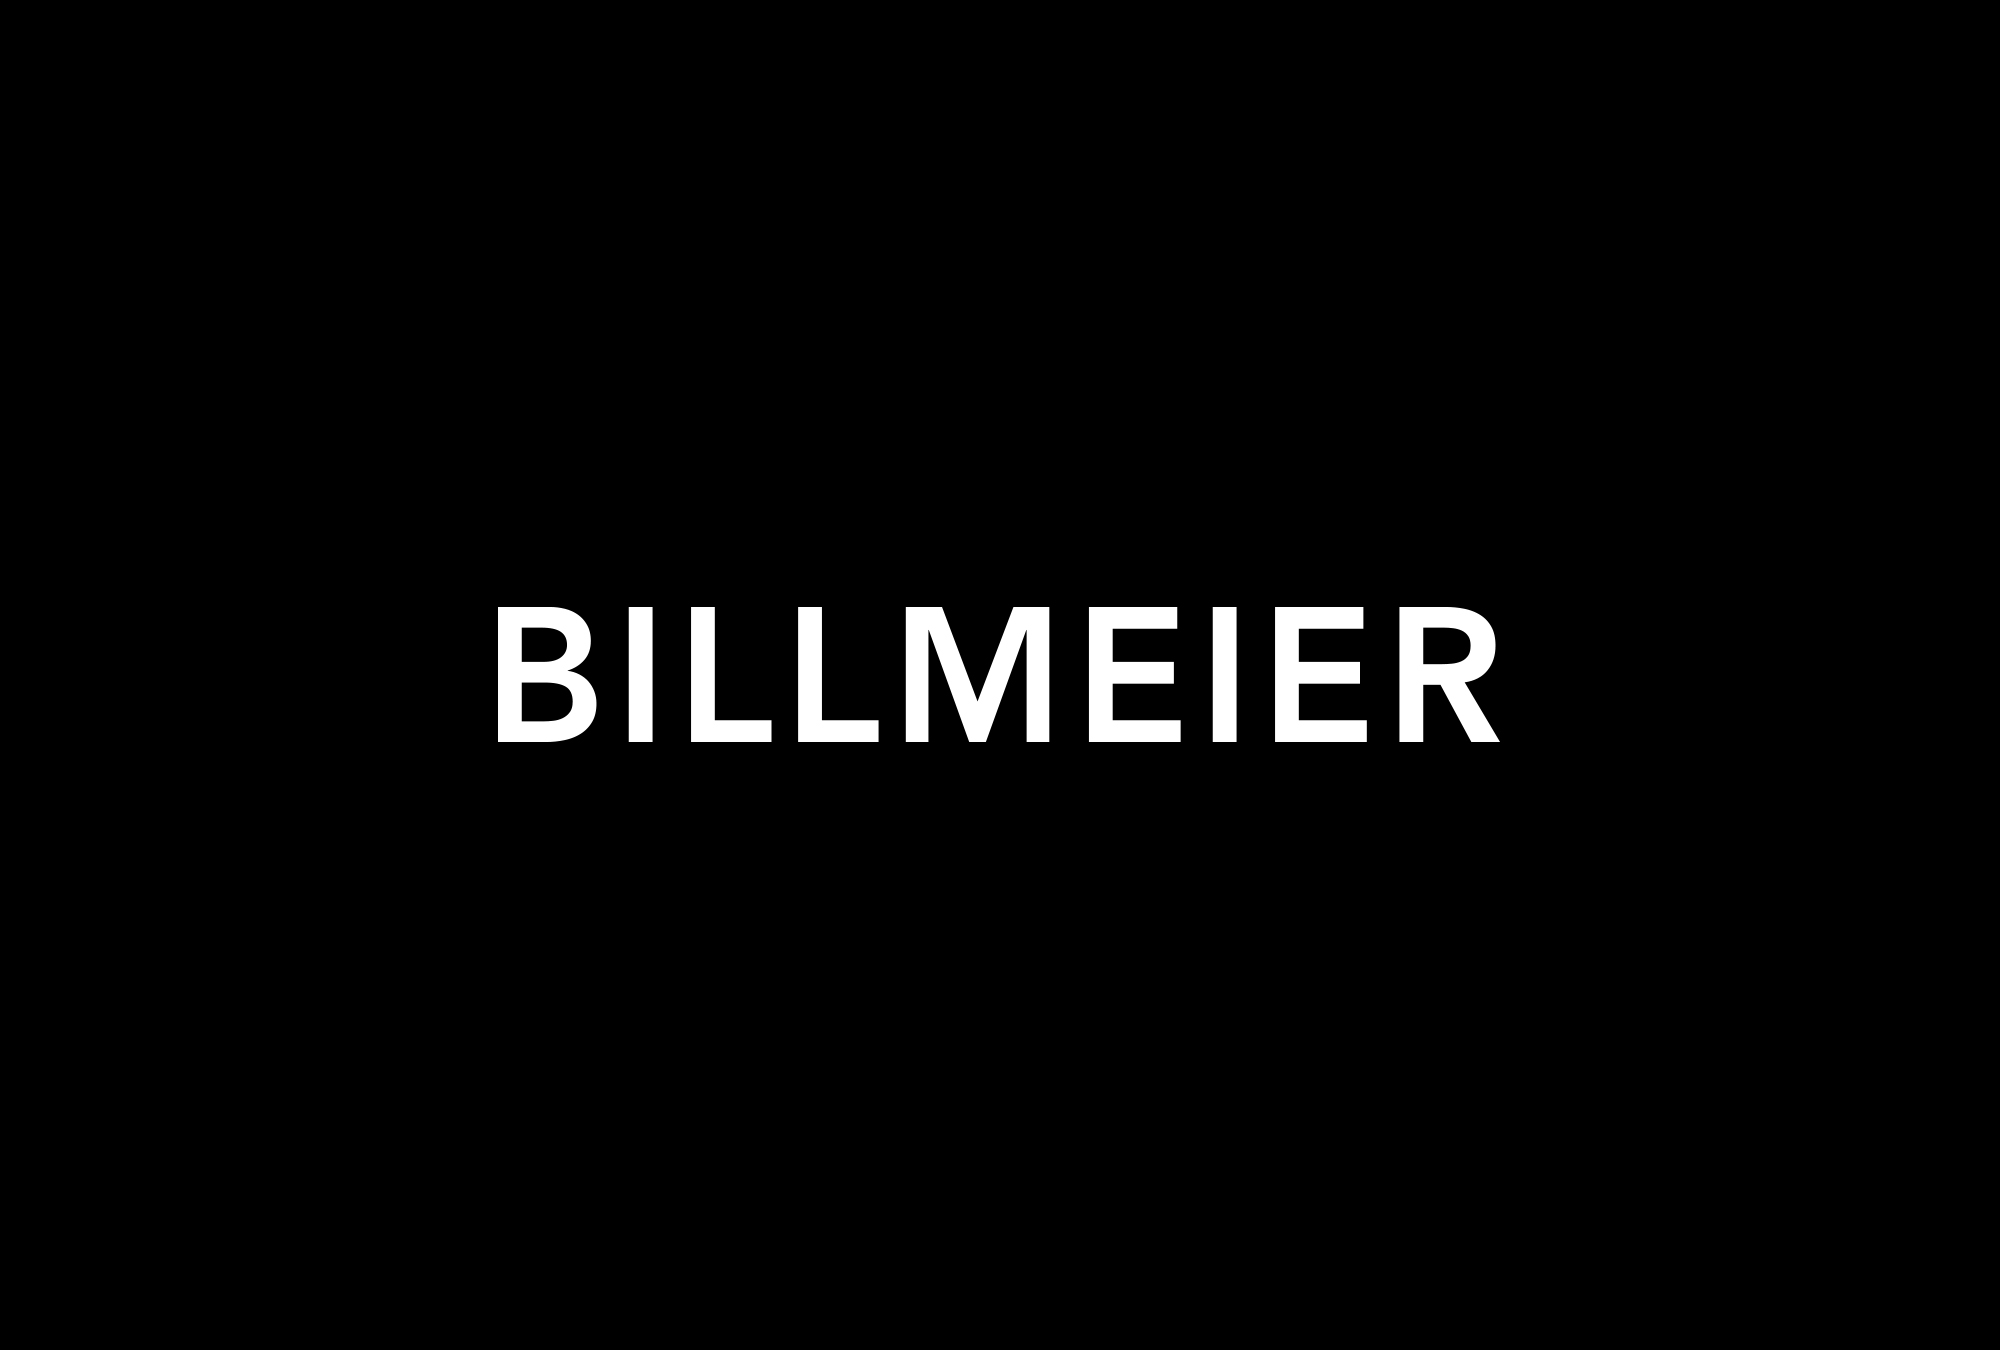 Billmeier Group Wordmark